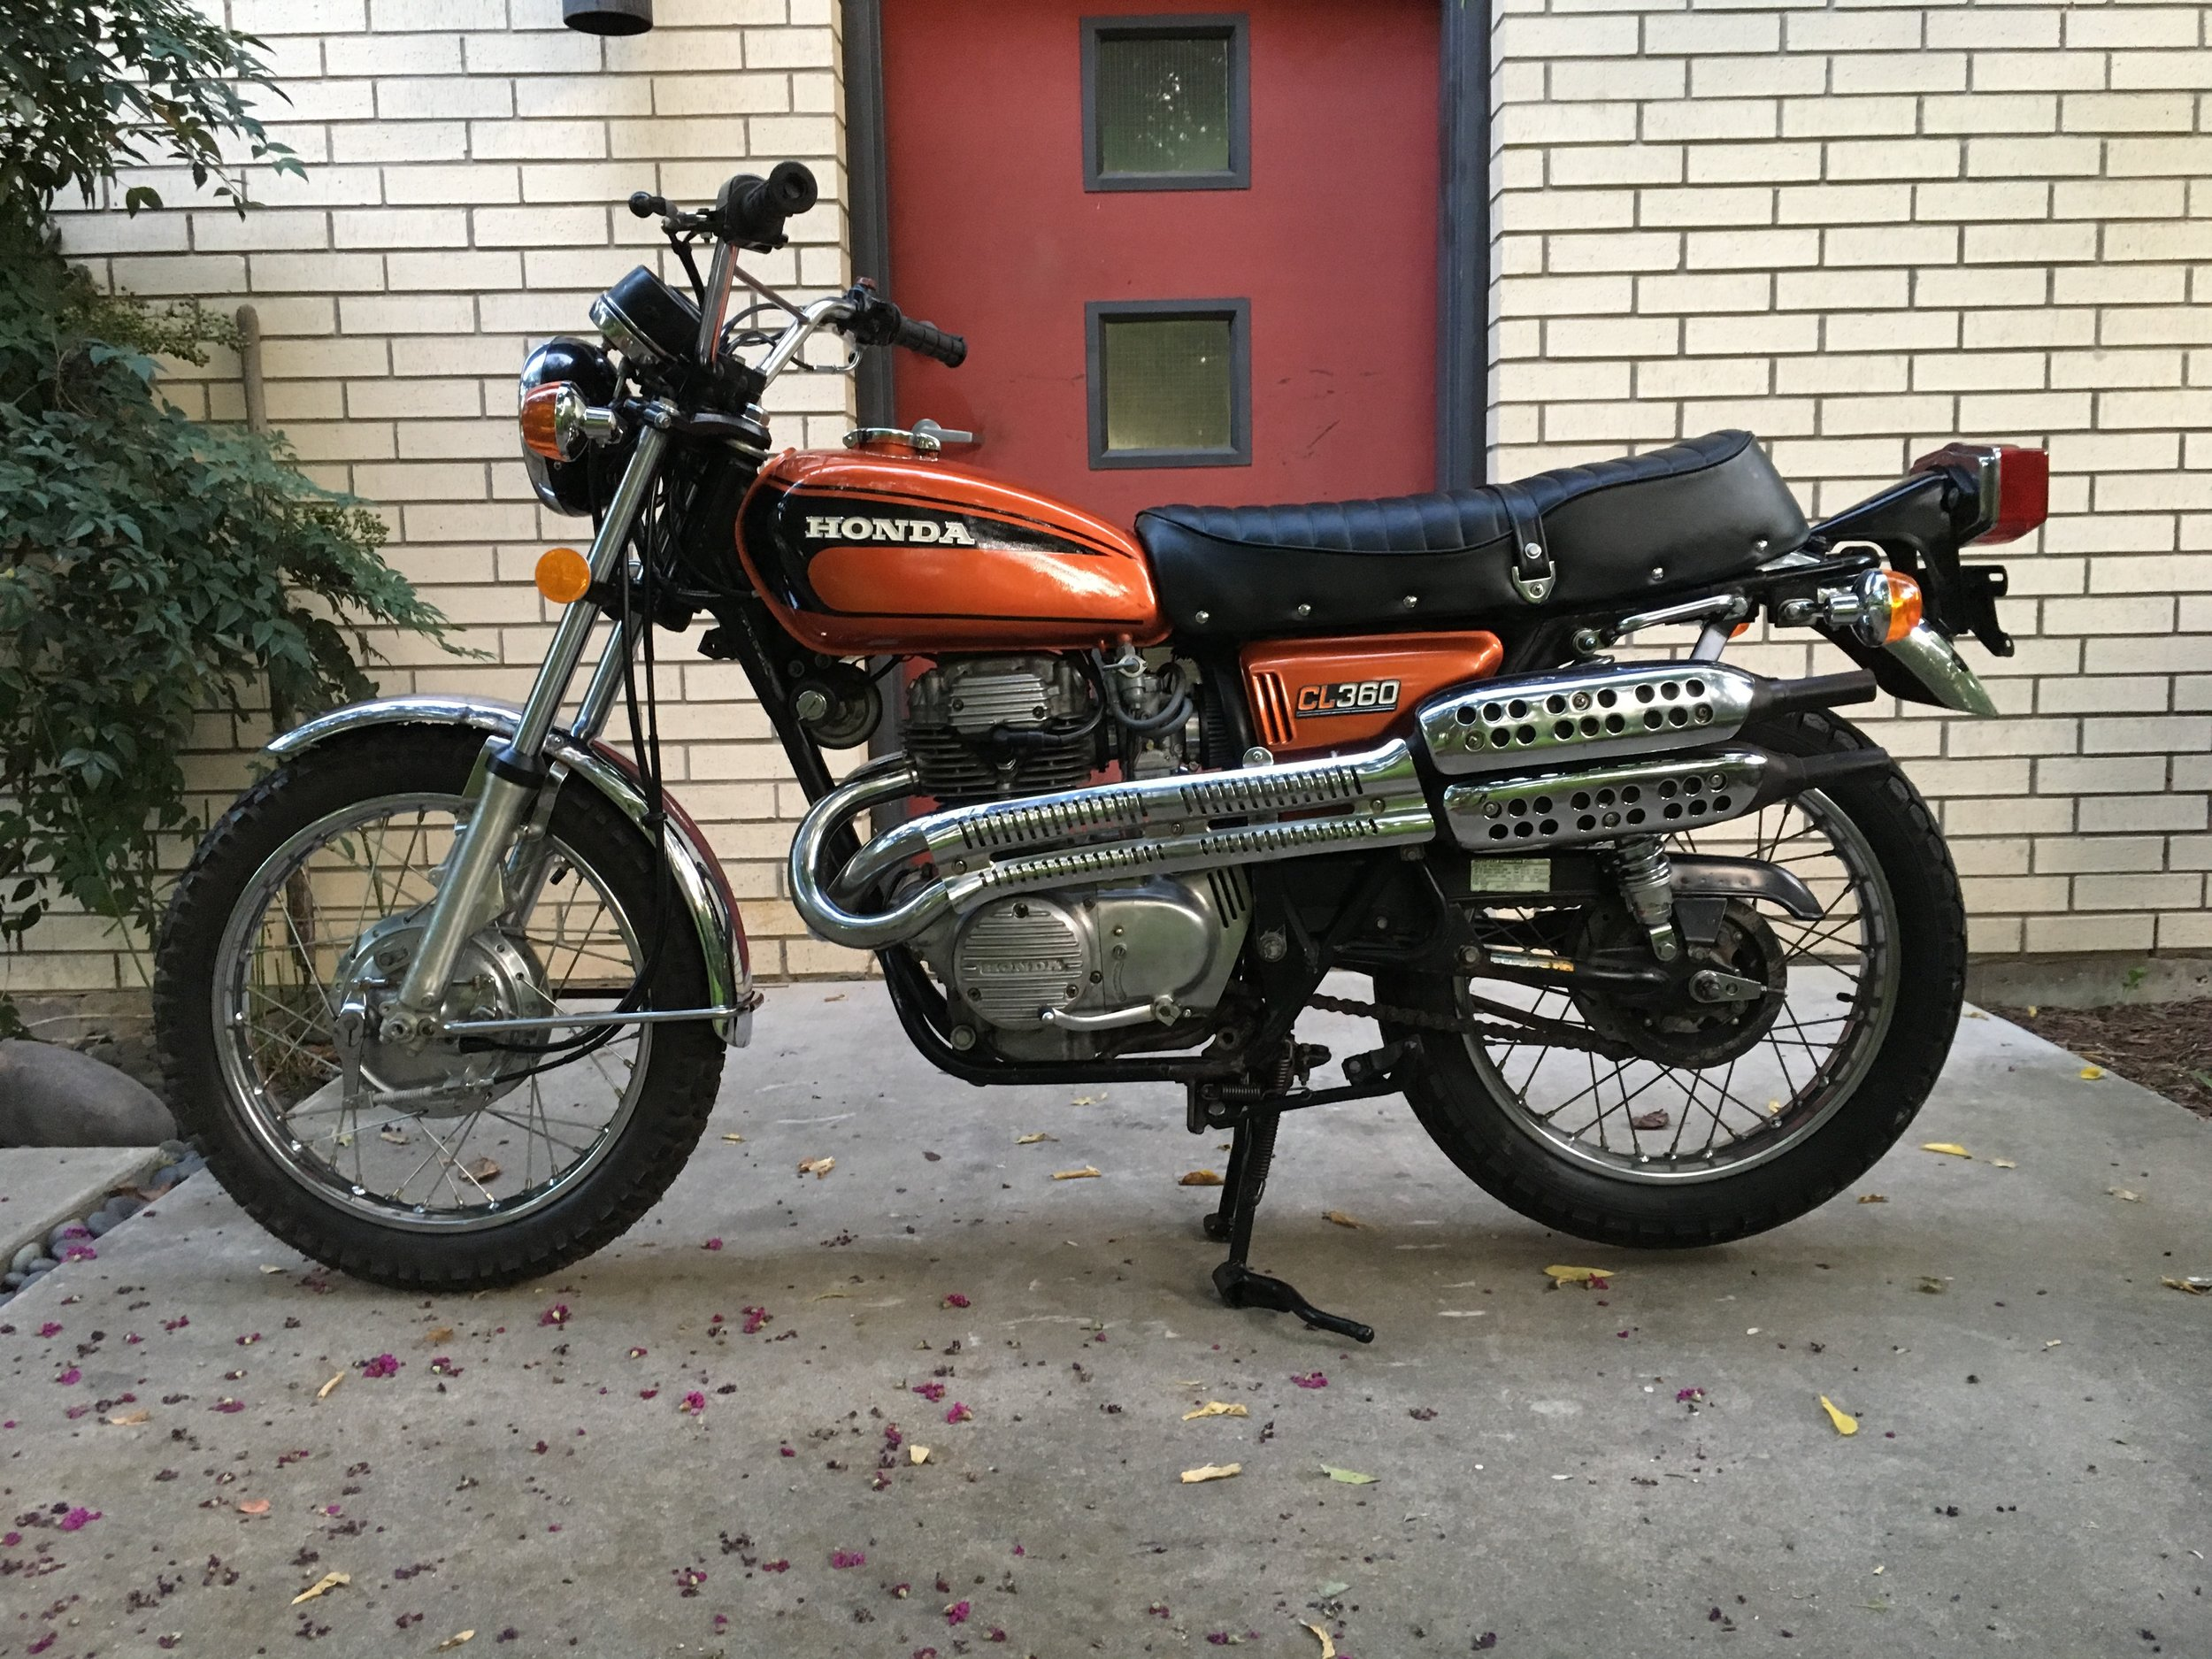 A 1975 Honda CL360 that came to the shop in storage bins. There were a number of NOS parts used to restore this beautiful survivor. A set of Mikuni VM30 carbs and pod filters replaced the original Keihin's, but the bike is otherwise stock. This bike is being prepared for a potential customer.